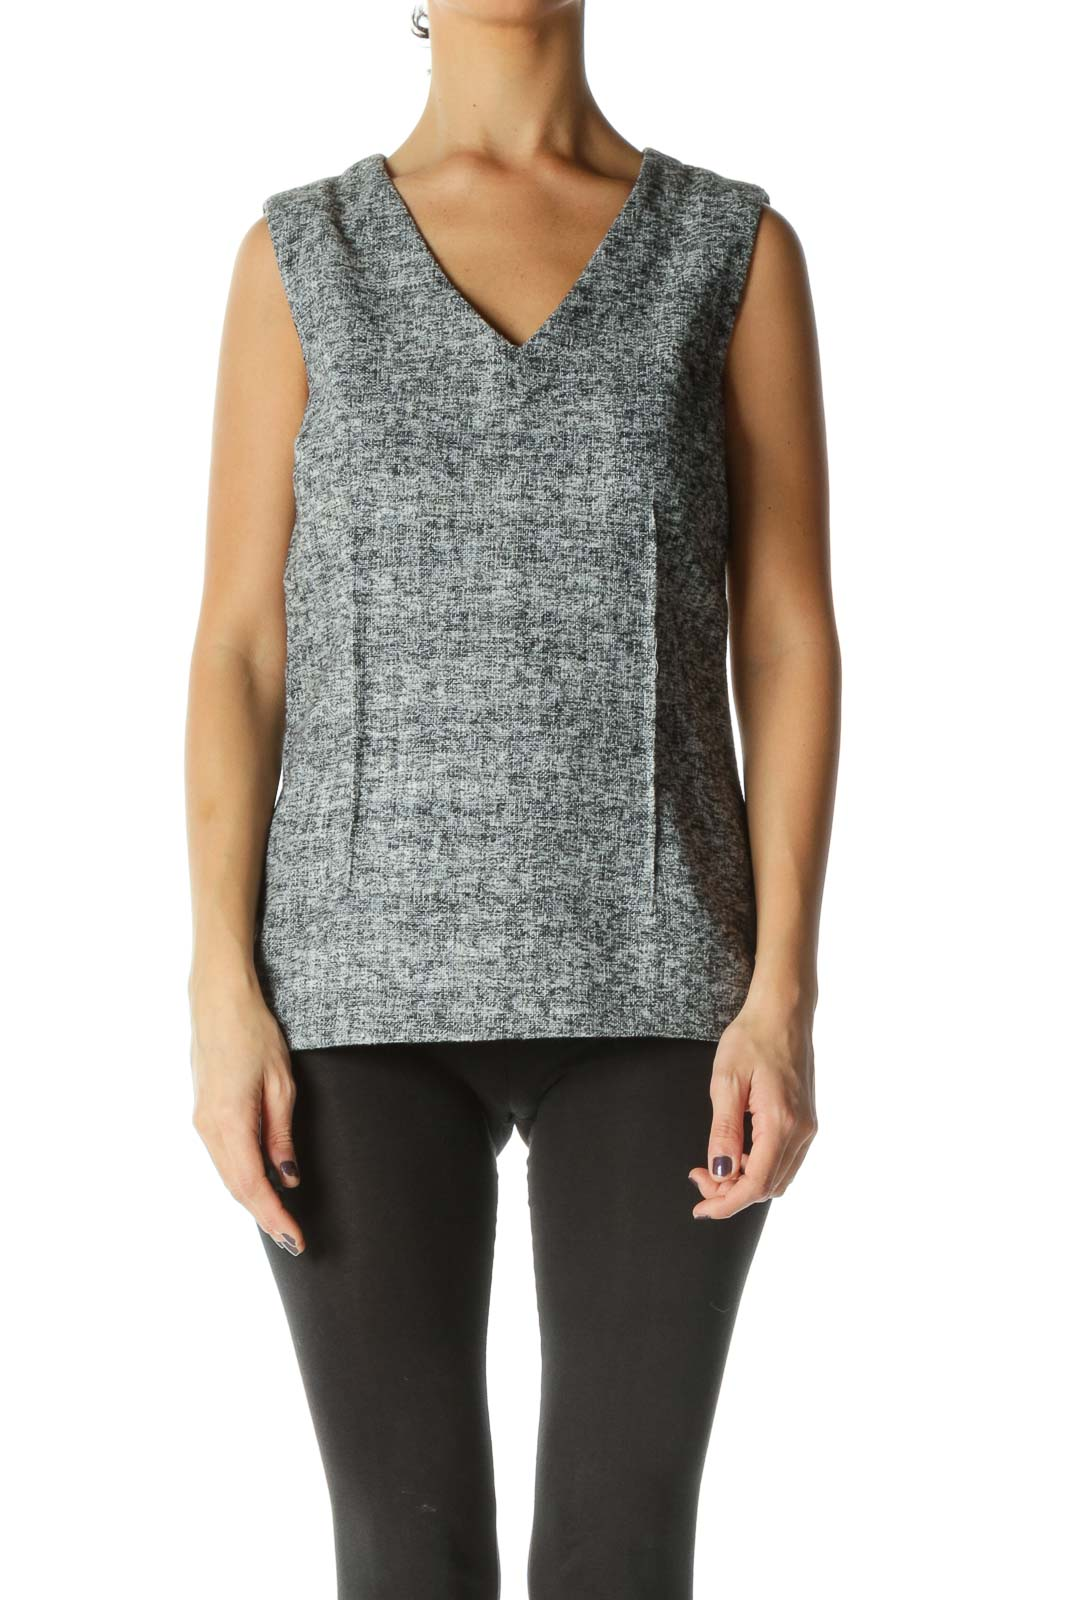 Gray Texture V Neck Casual Blouse